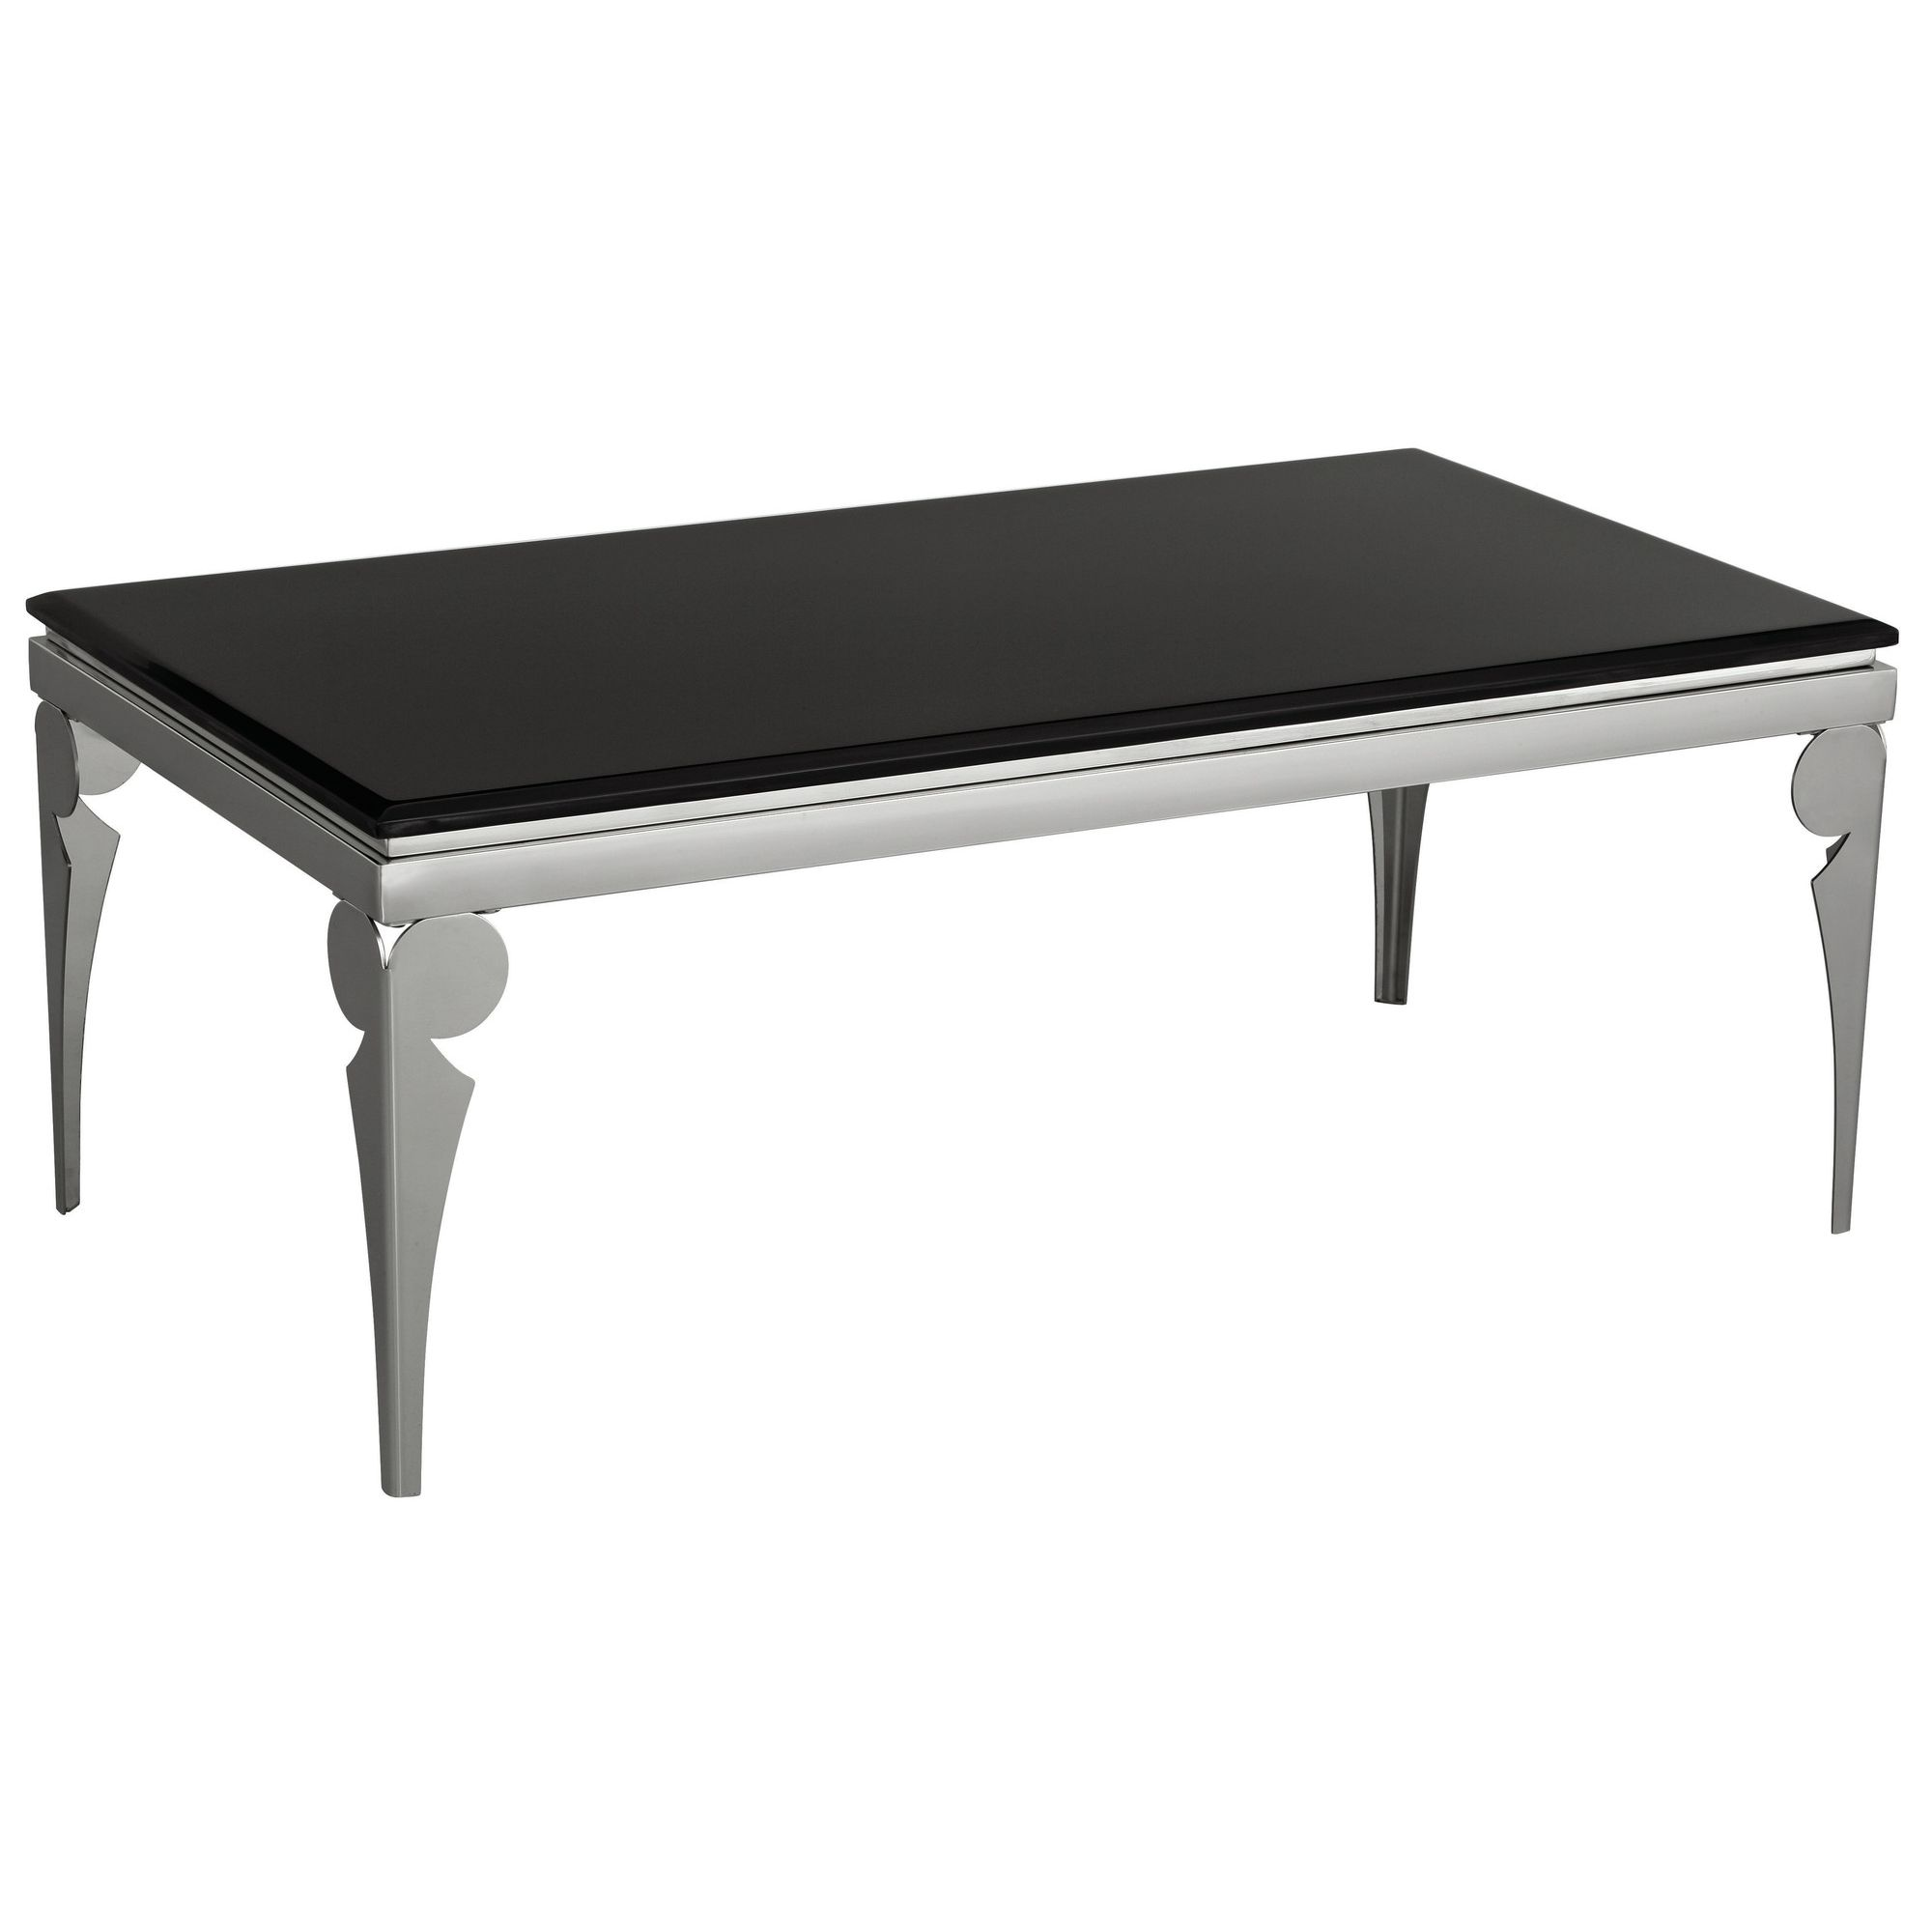 Premier Housewares Black Marble Coffee Table at Tesco Direct